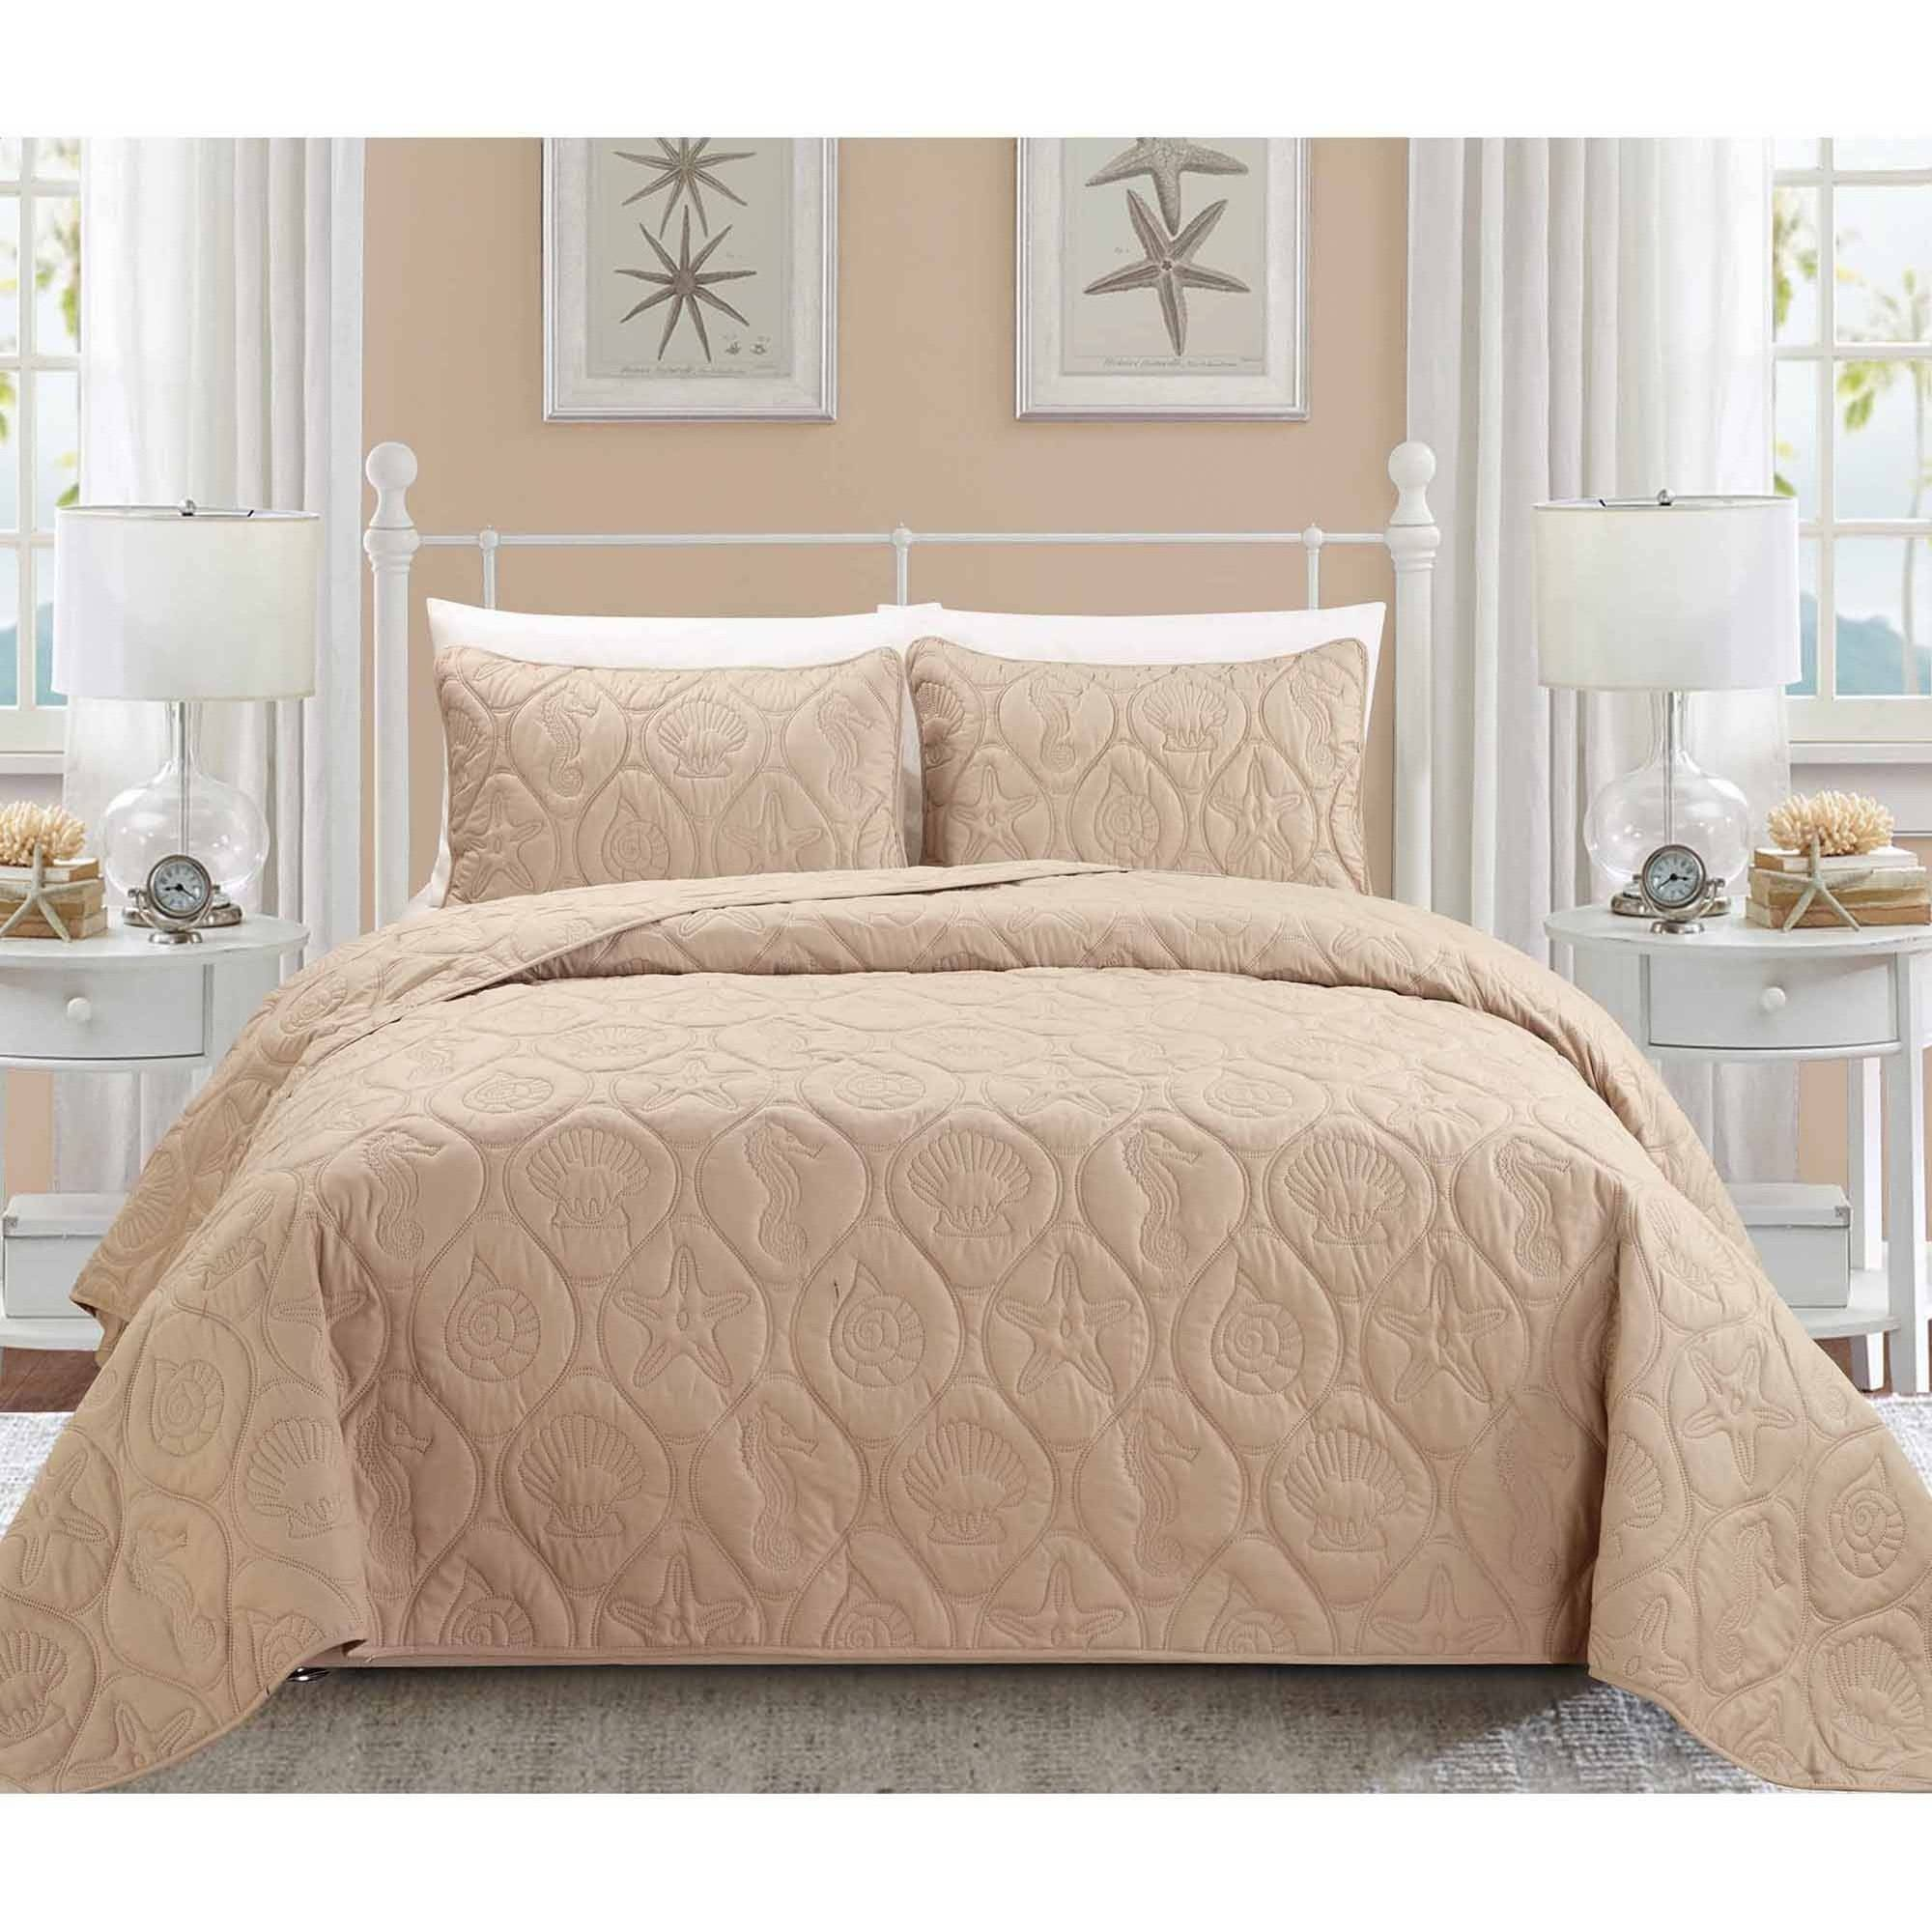 EverRouge Coral 3-Piece Bedding Set